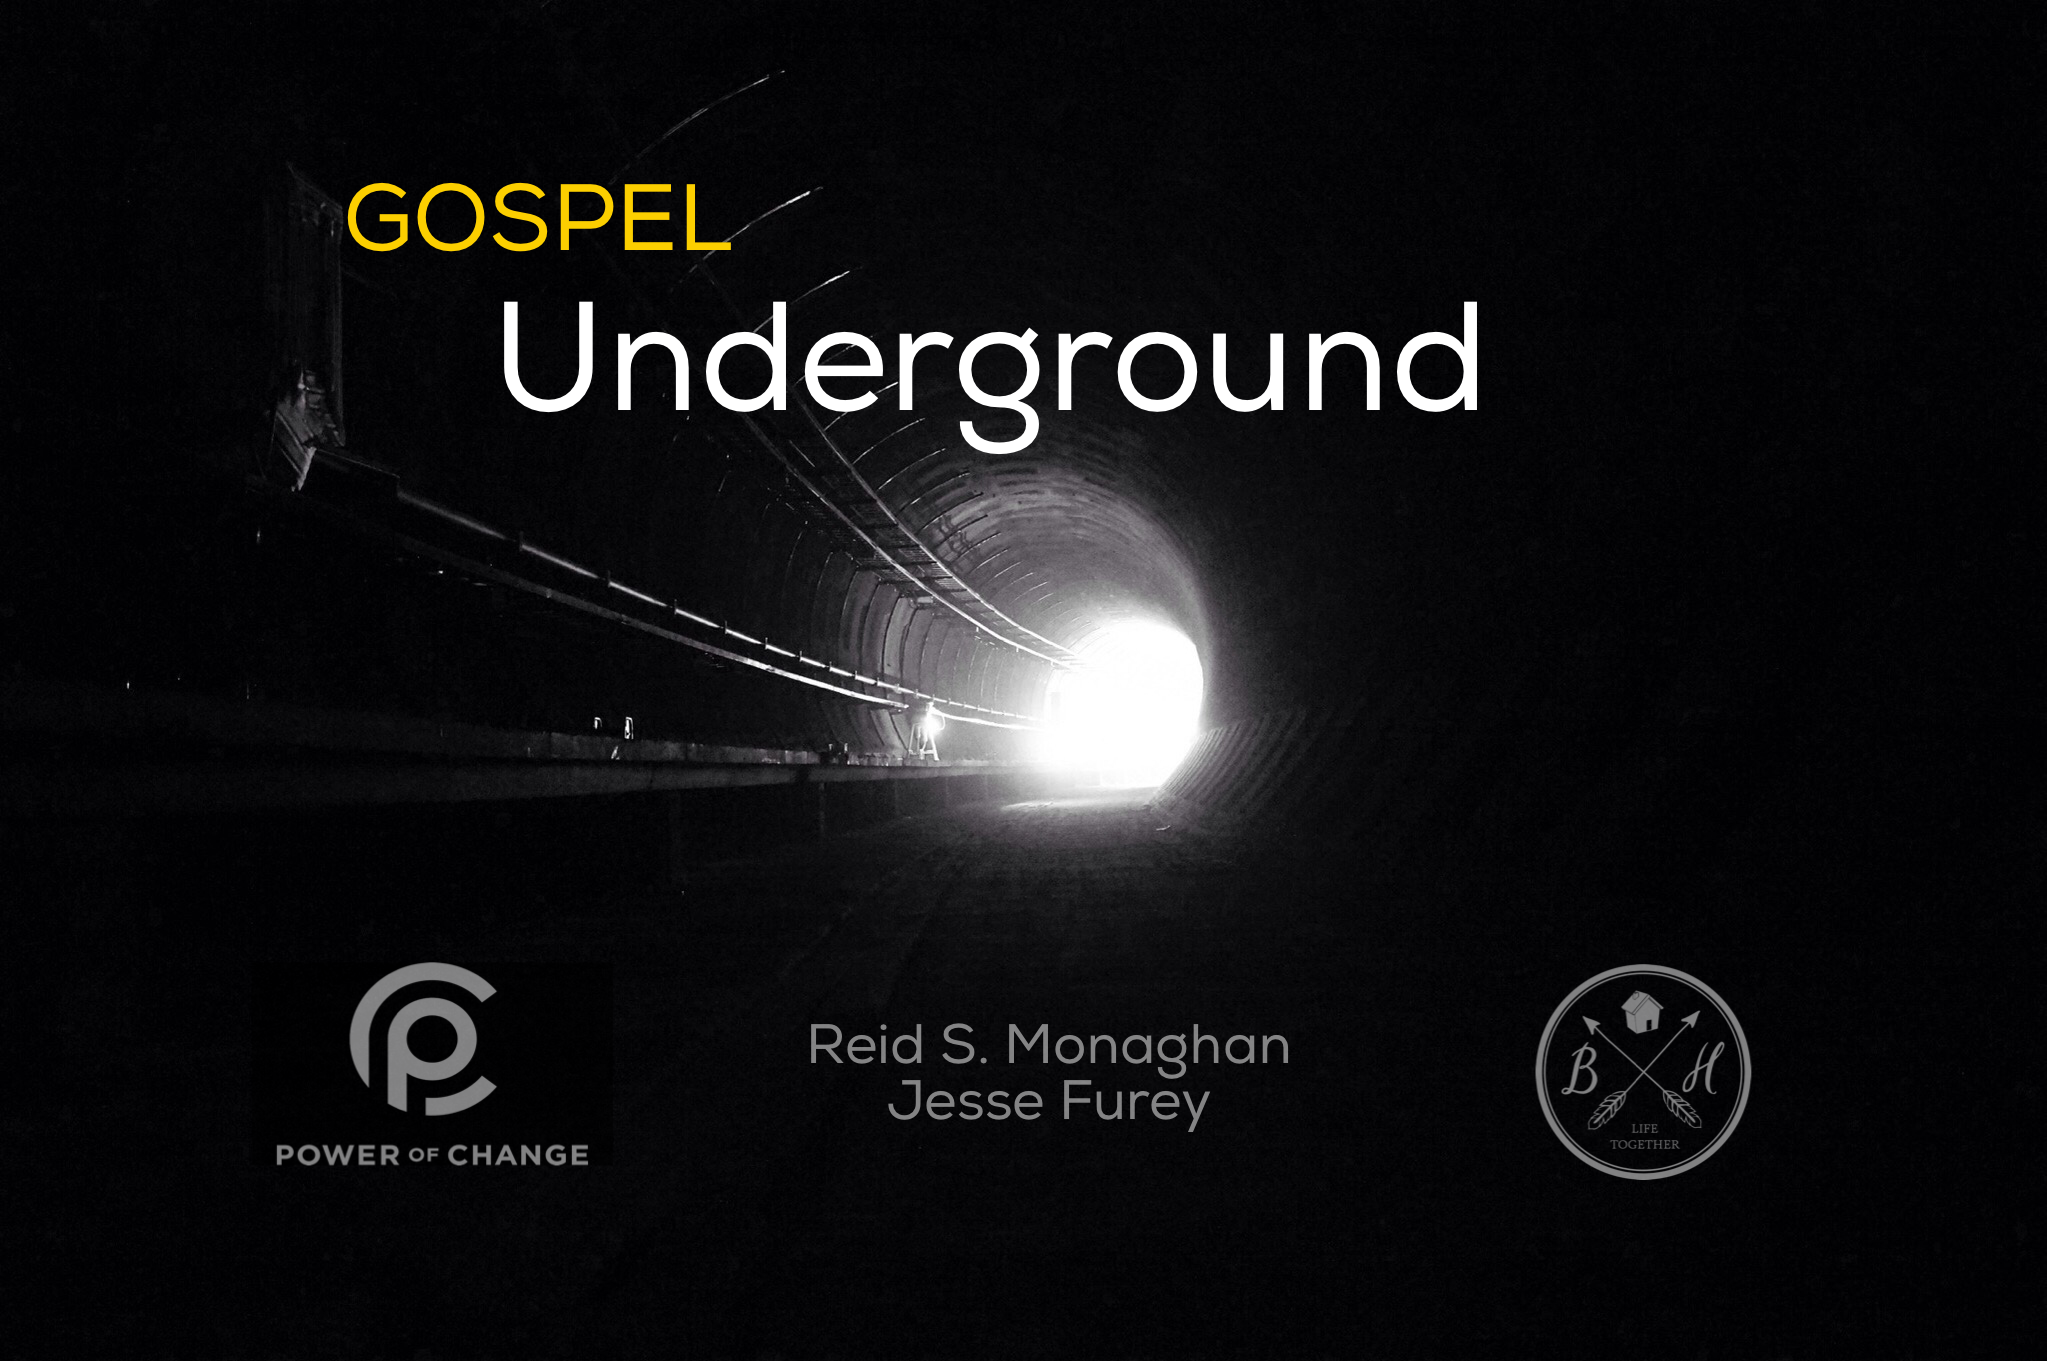 Reid Monaghan and Jesse Furey give a quick introduction to themselves, the Gospel Underground podcast and some segments that will feature in future episodes.